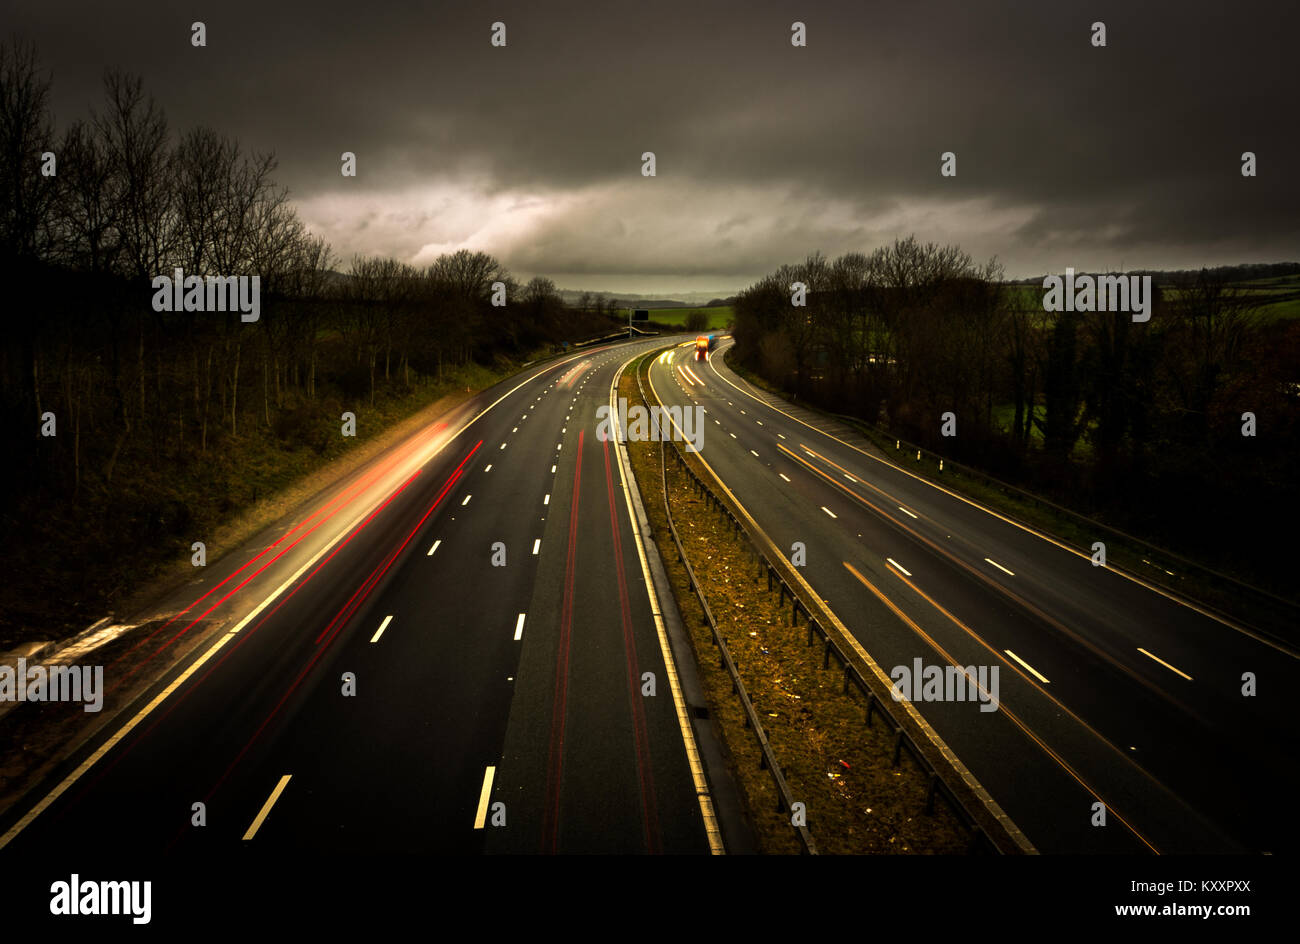 Gloomy weather over the M6 Motorway near Carnforth in Lancashire (UK). Stock Photo